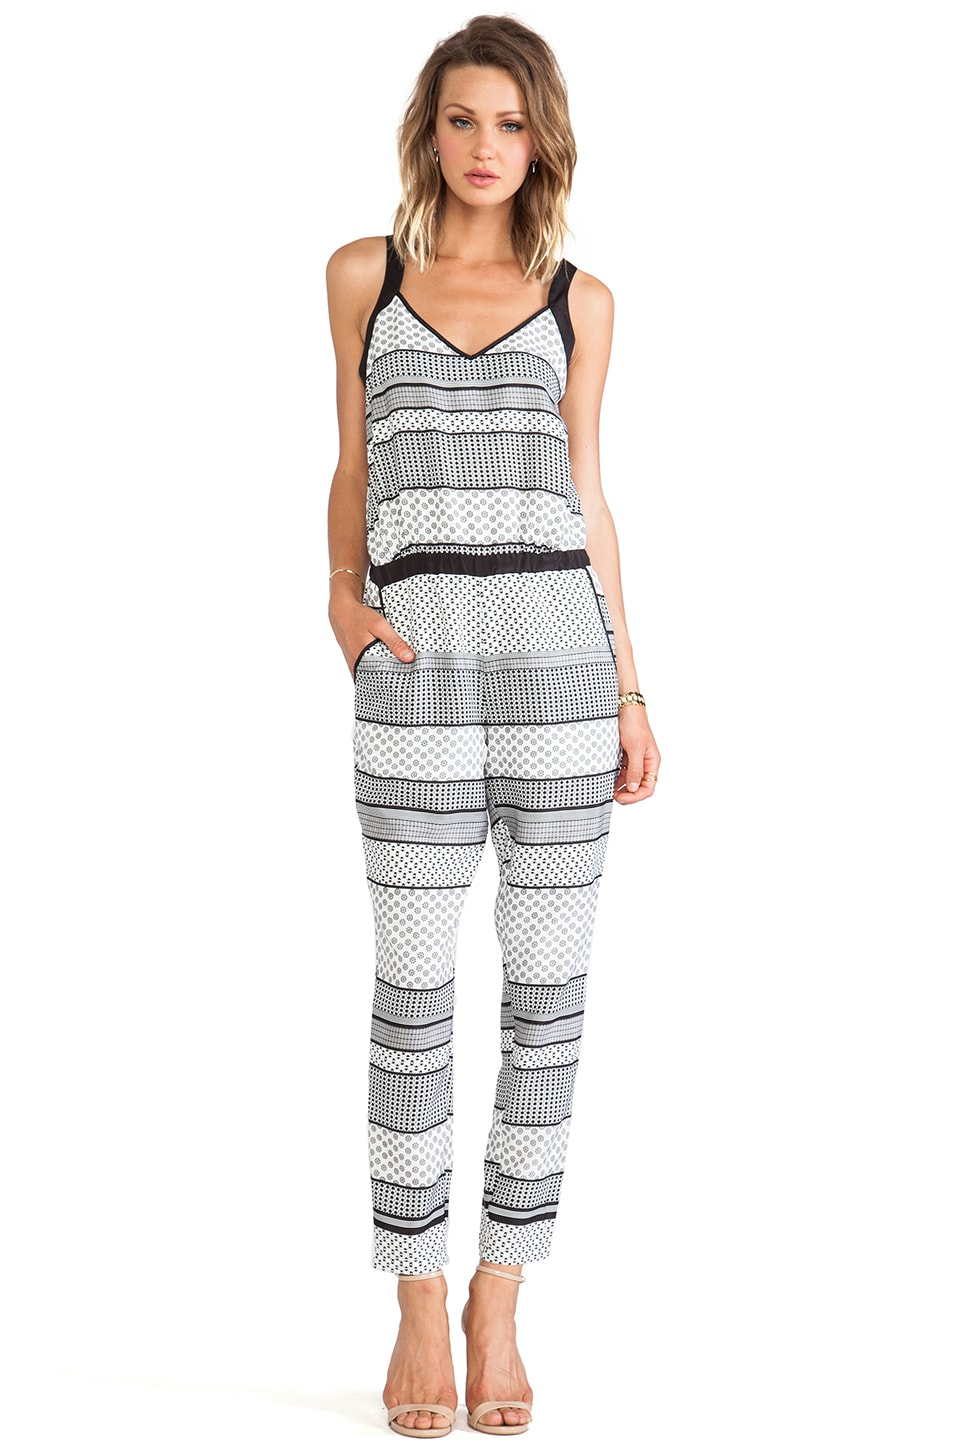 BB Dakota Holloway Striped Foulard Romper in Black & White